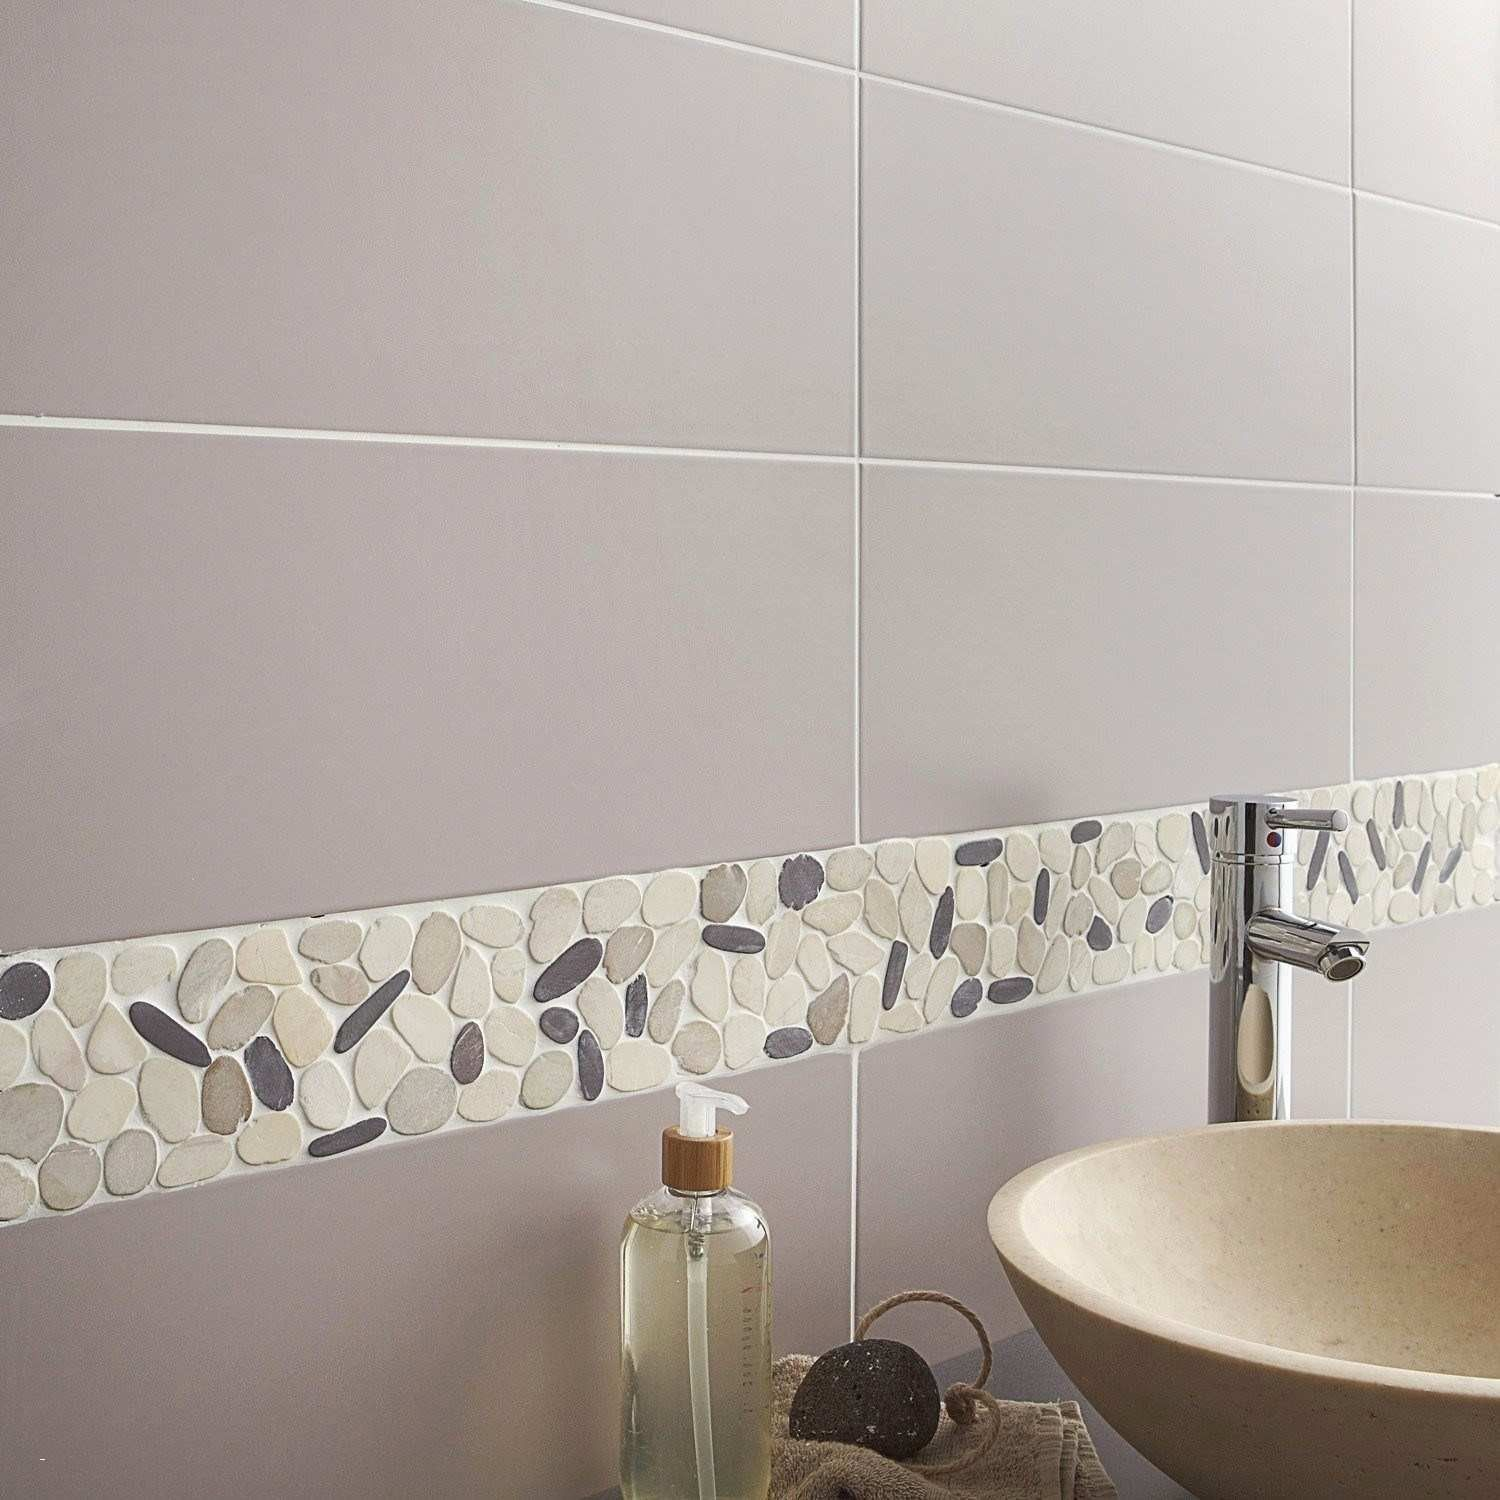 Lovely Refaire Joint Carrelage Salle De Bain Stone Mosaic Bathroom Small Bathroom Remodel Rustic Bathrooms